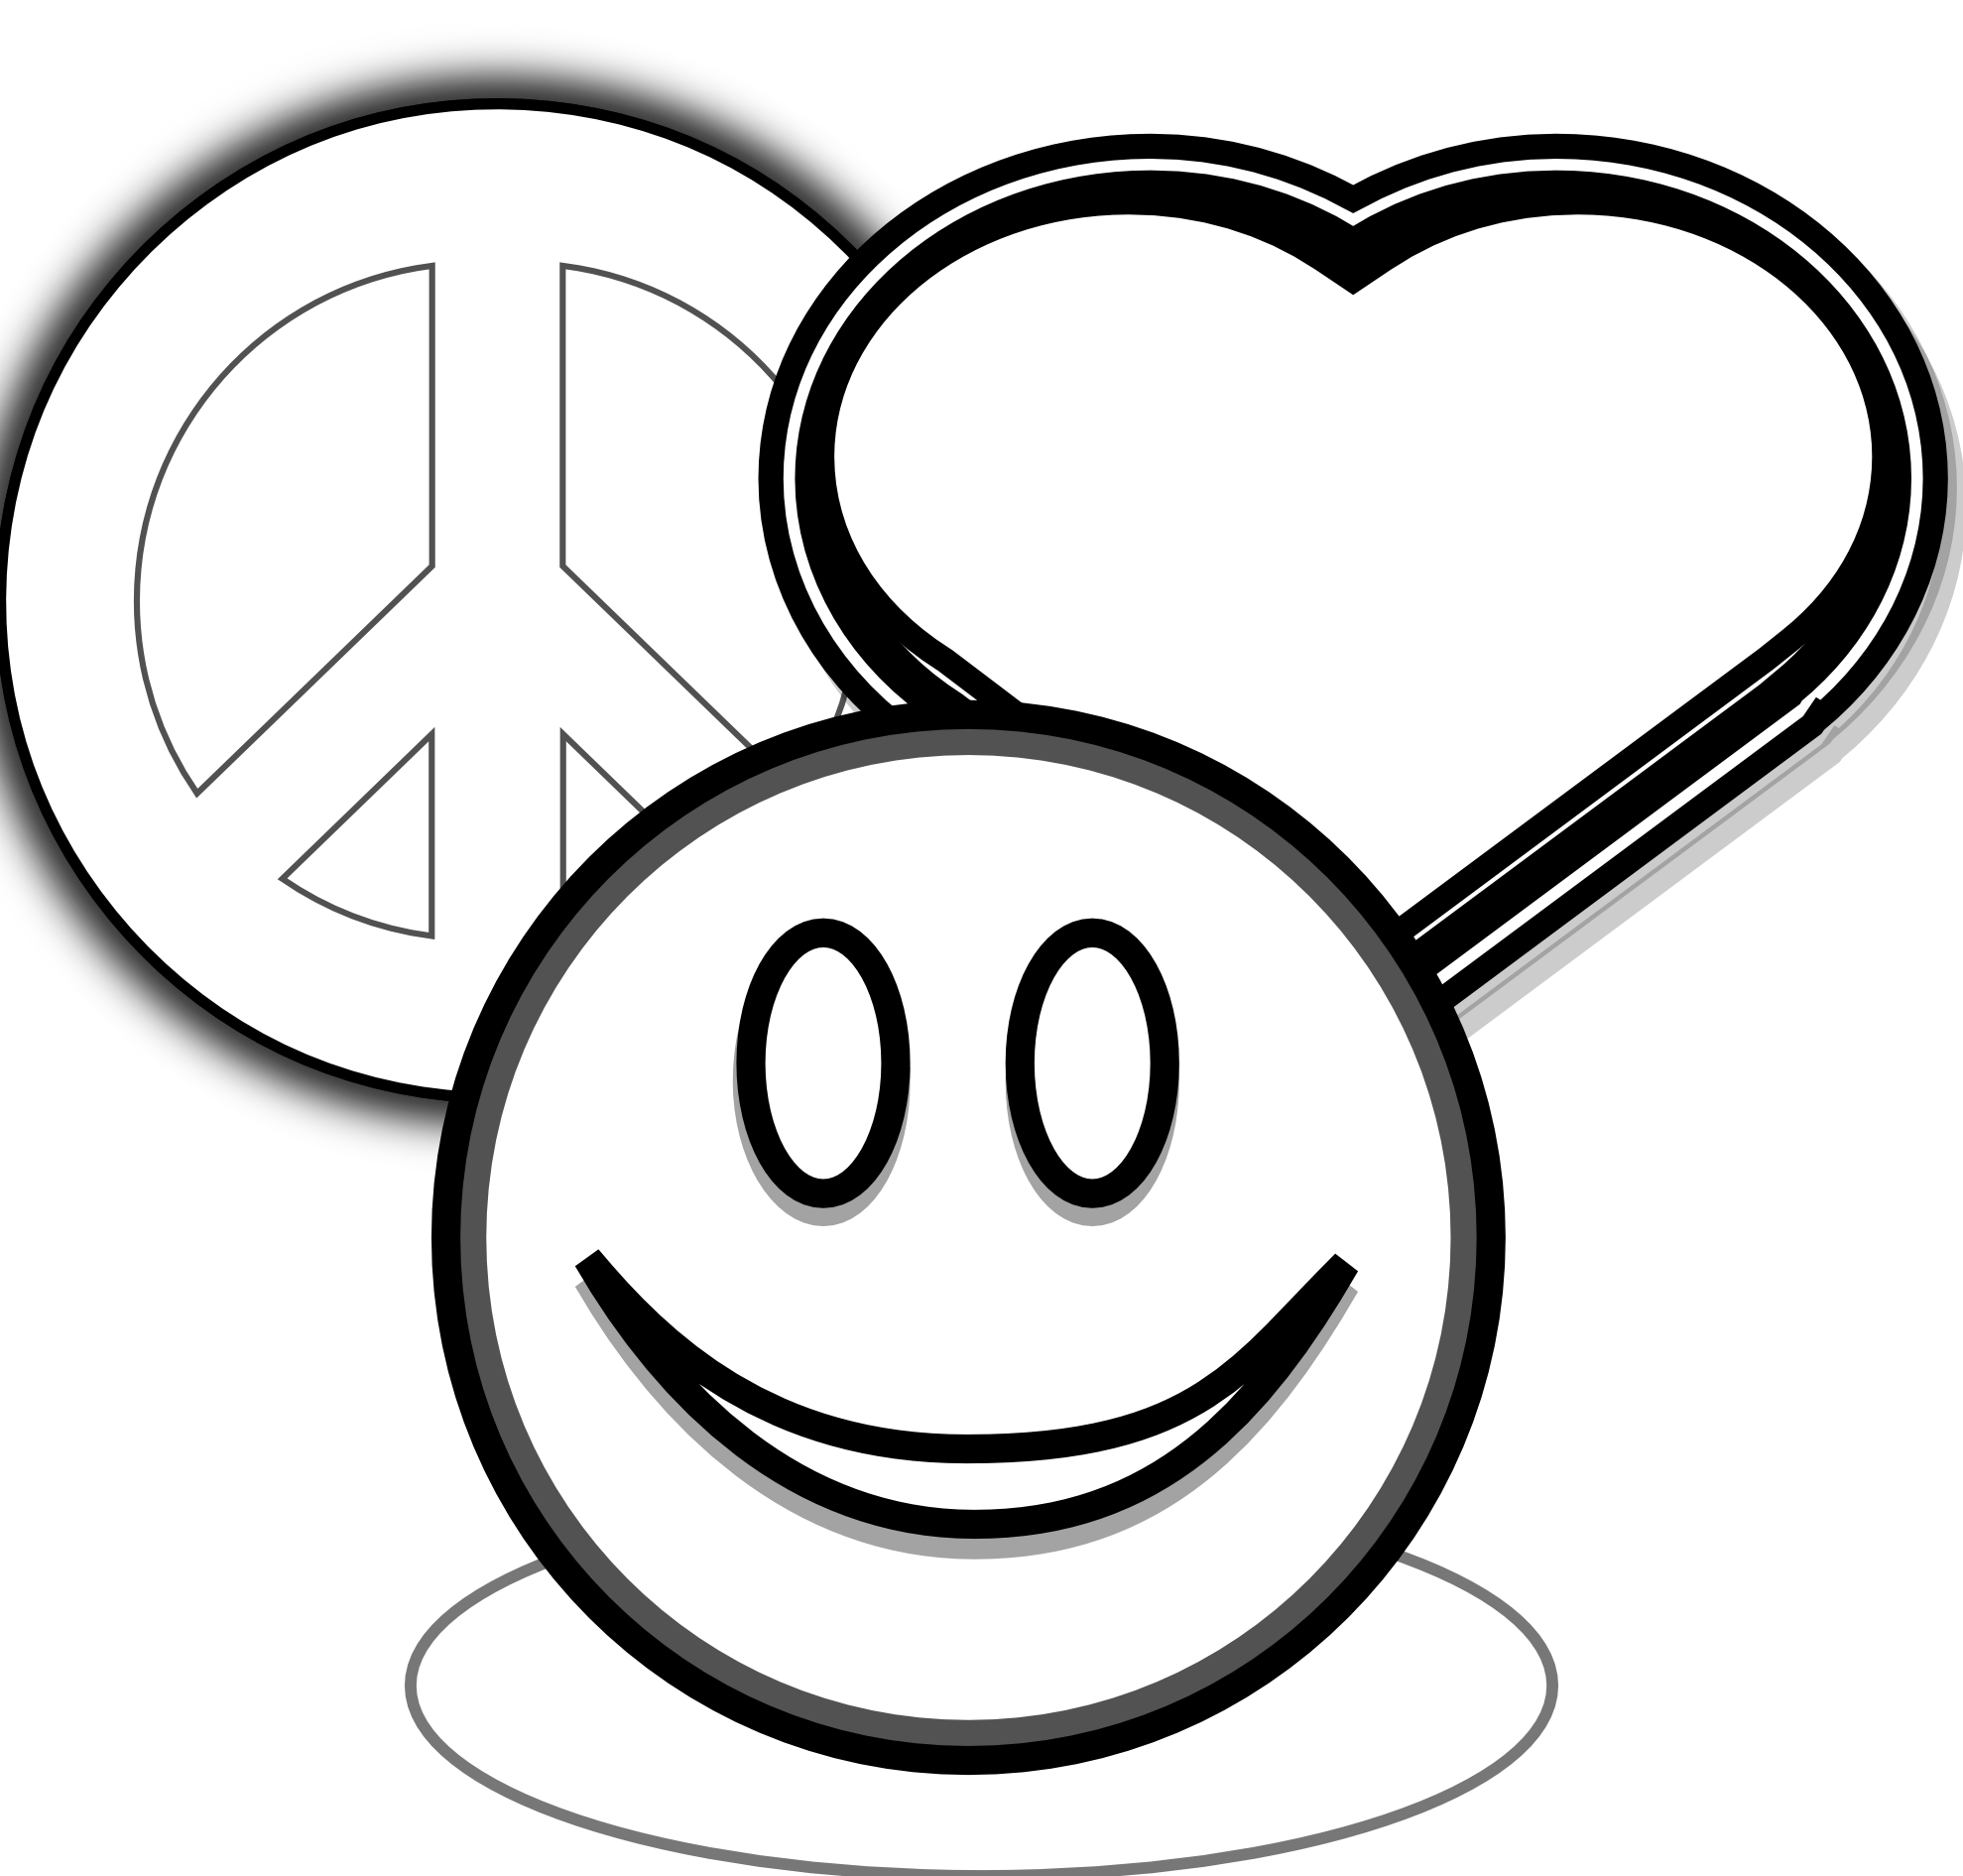 Peace Sign clipart peace and love Love Free Art: Clipart Panda